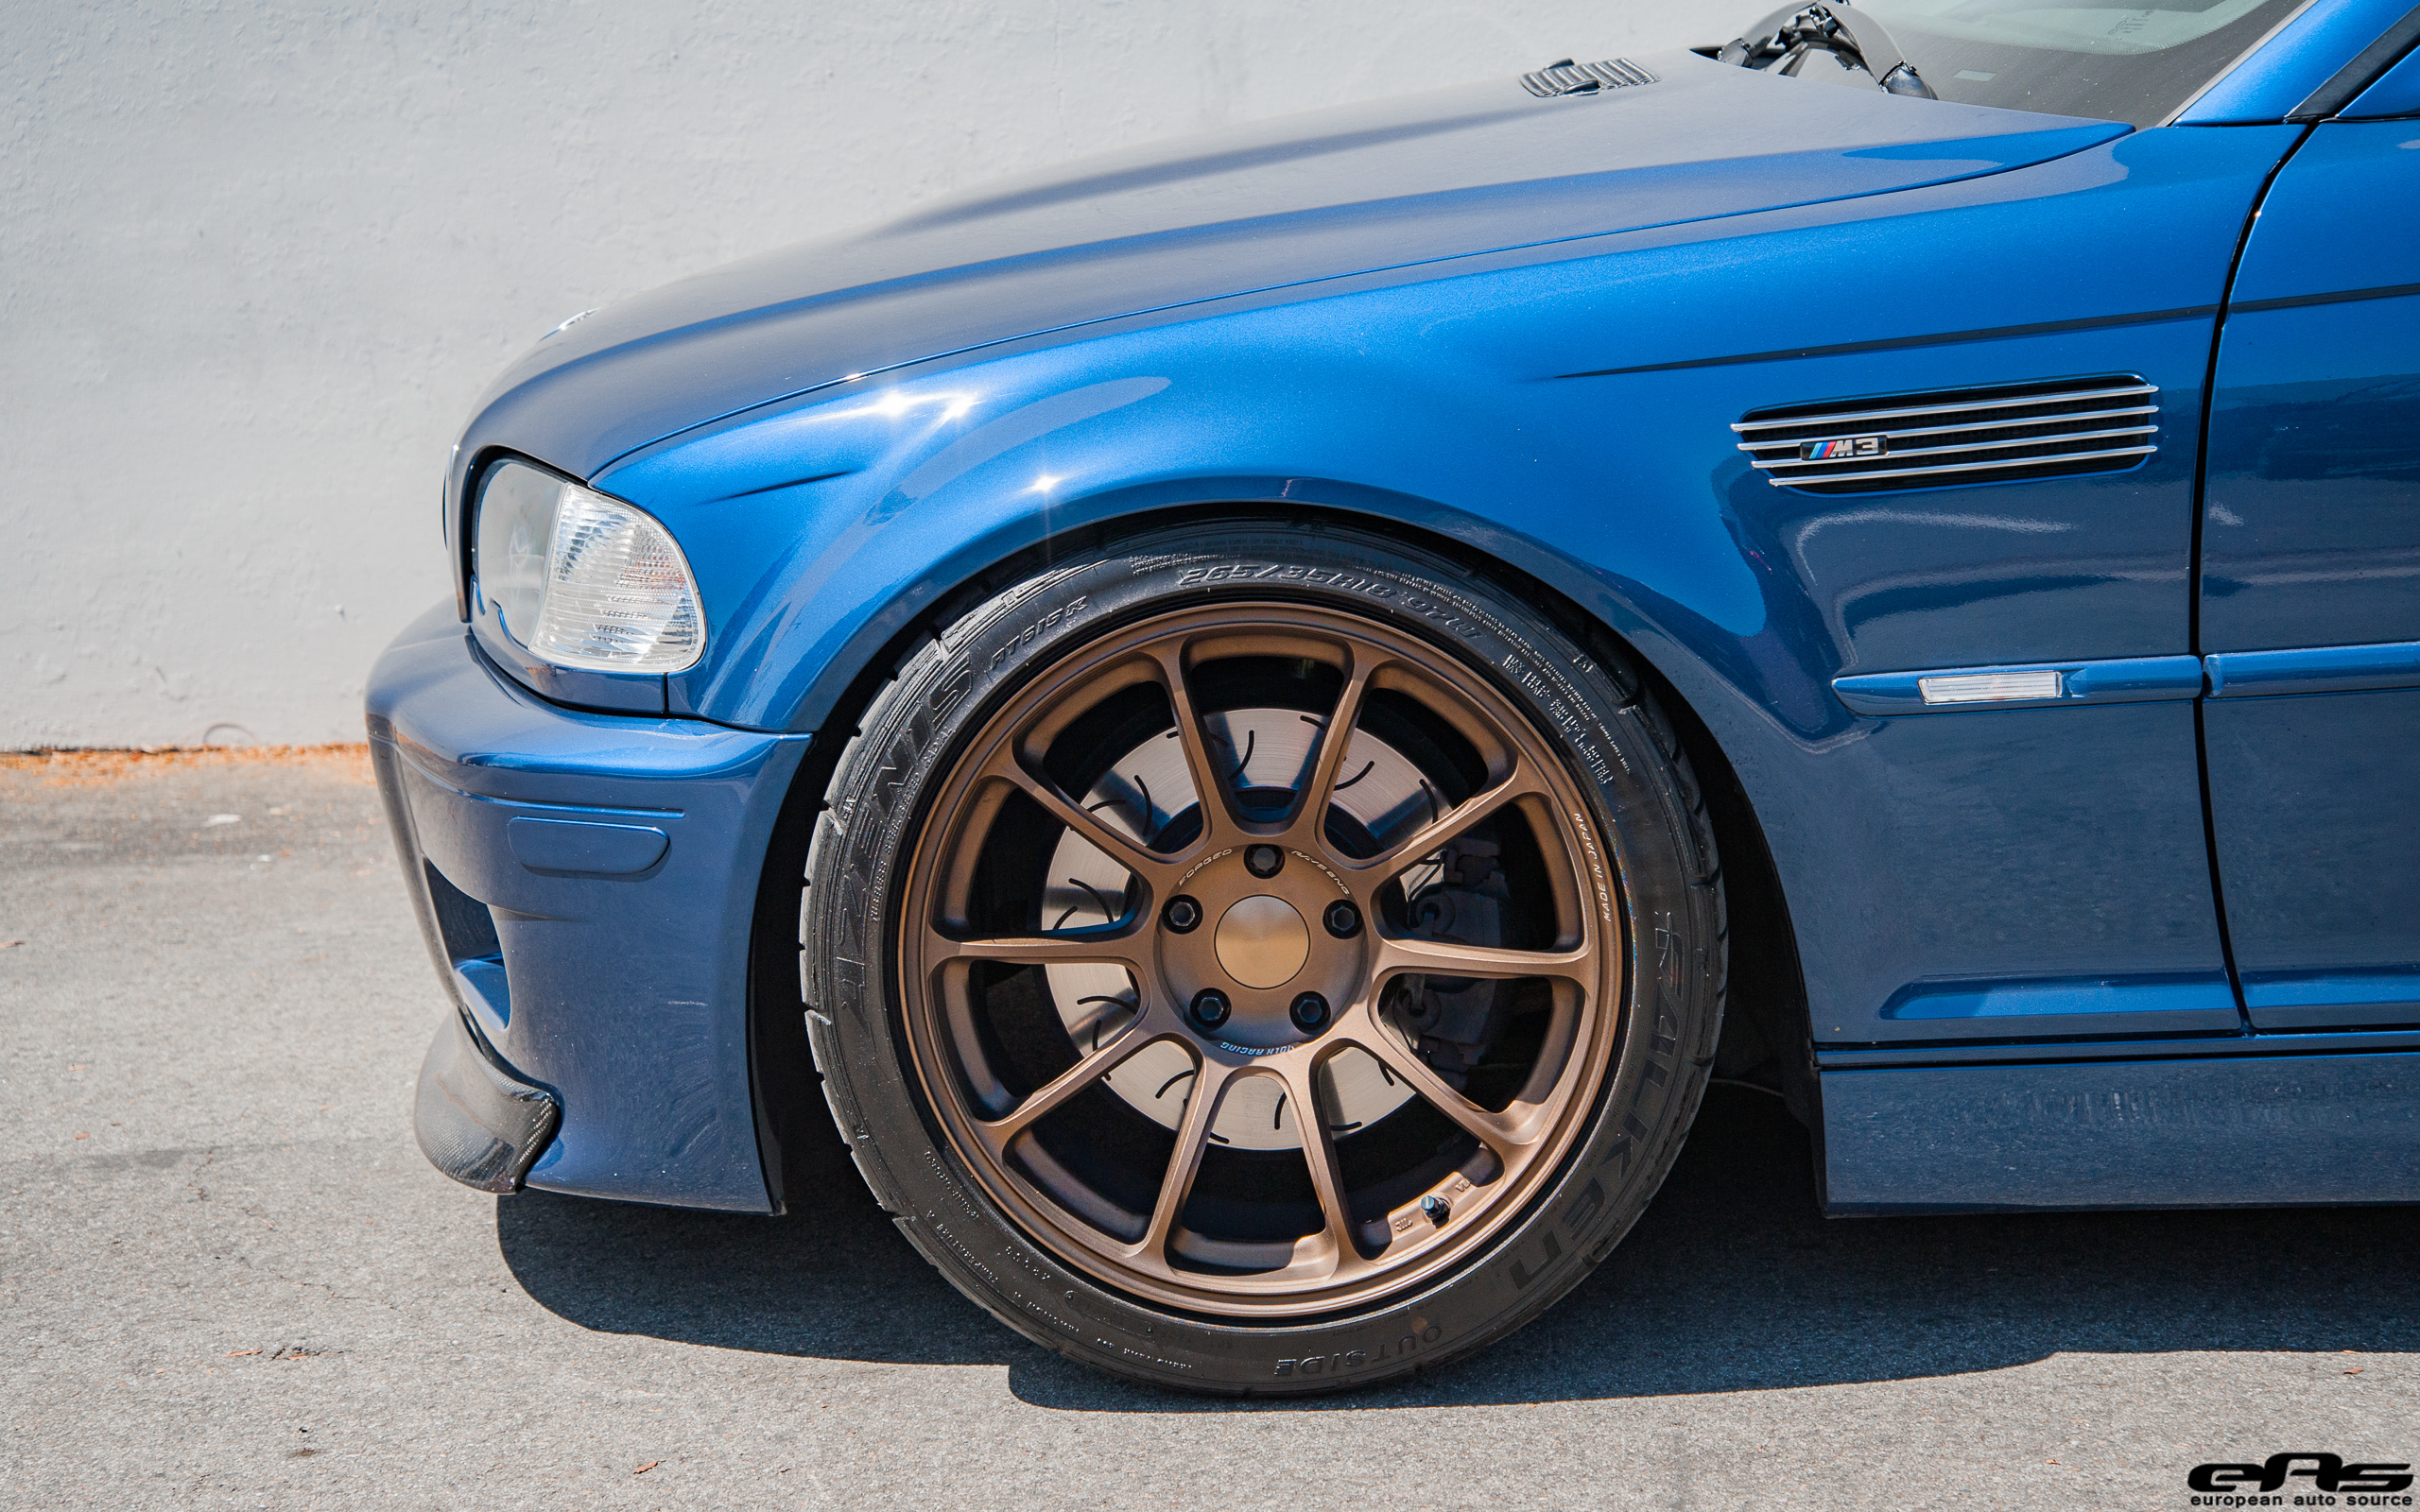 Bmw E46 M3 Mystic Blue >> A Mystic Blue BMW E46 M3 Gets Aftermarket Goodies At European Auto Source